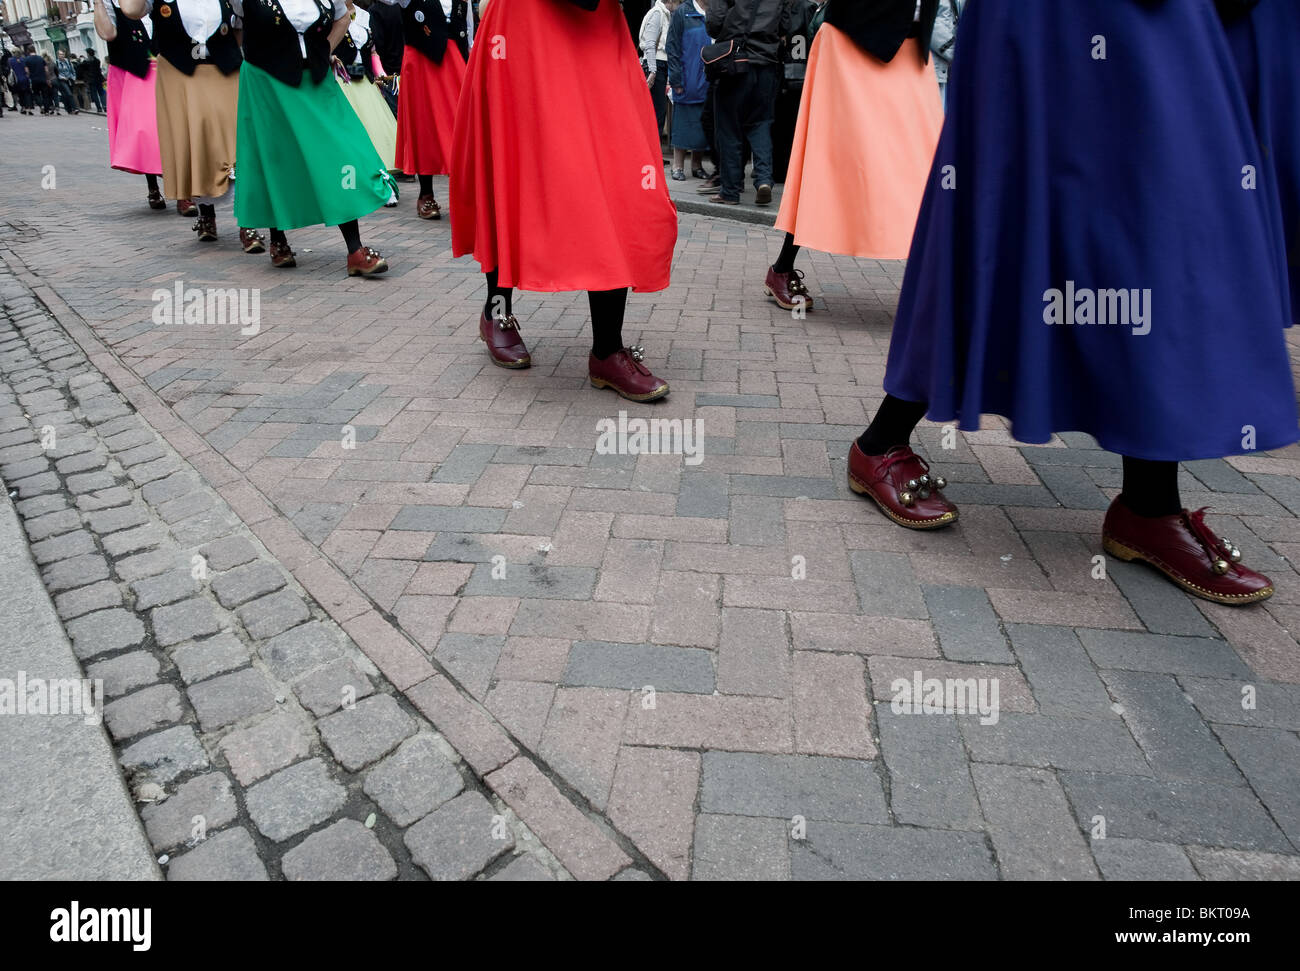 A Ladies Morris team wearing colourful skirts dancings at the Sweeps Festival - Stock Image